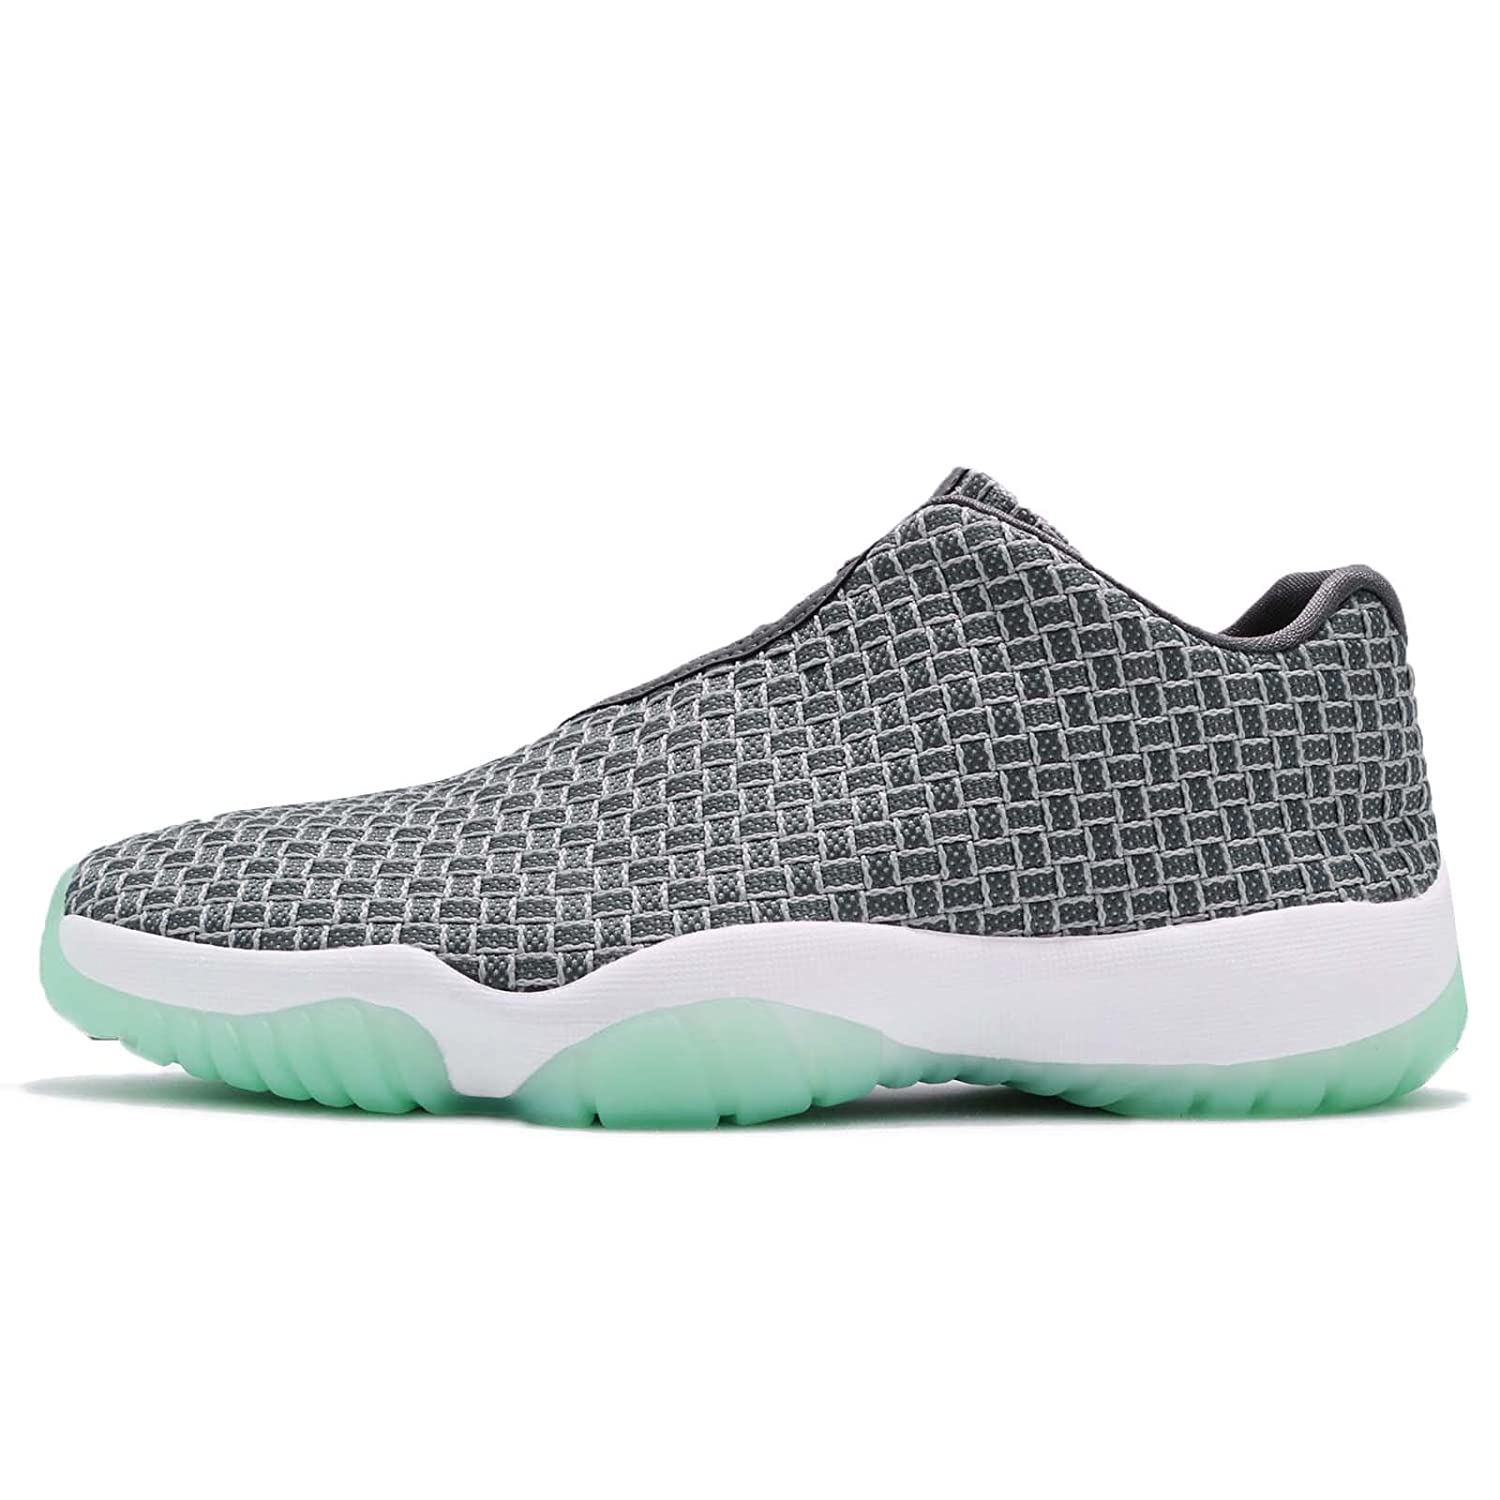 new style ca8ec 51871 Jordan Men's Air Future Low, Wolf Grey/Emerald Rise-Emerald Rise, 10 M US